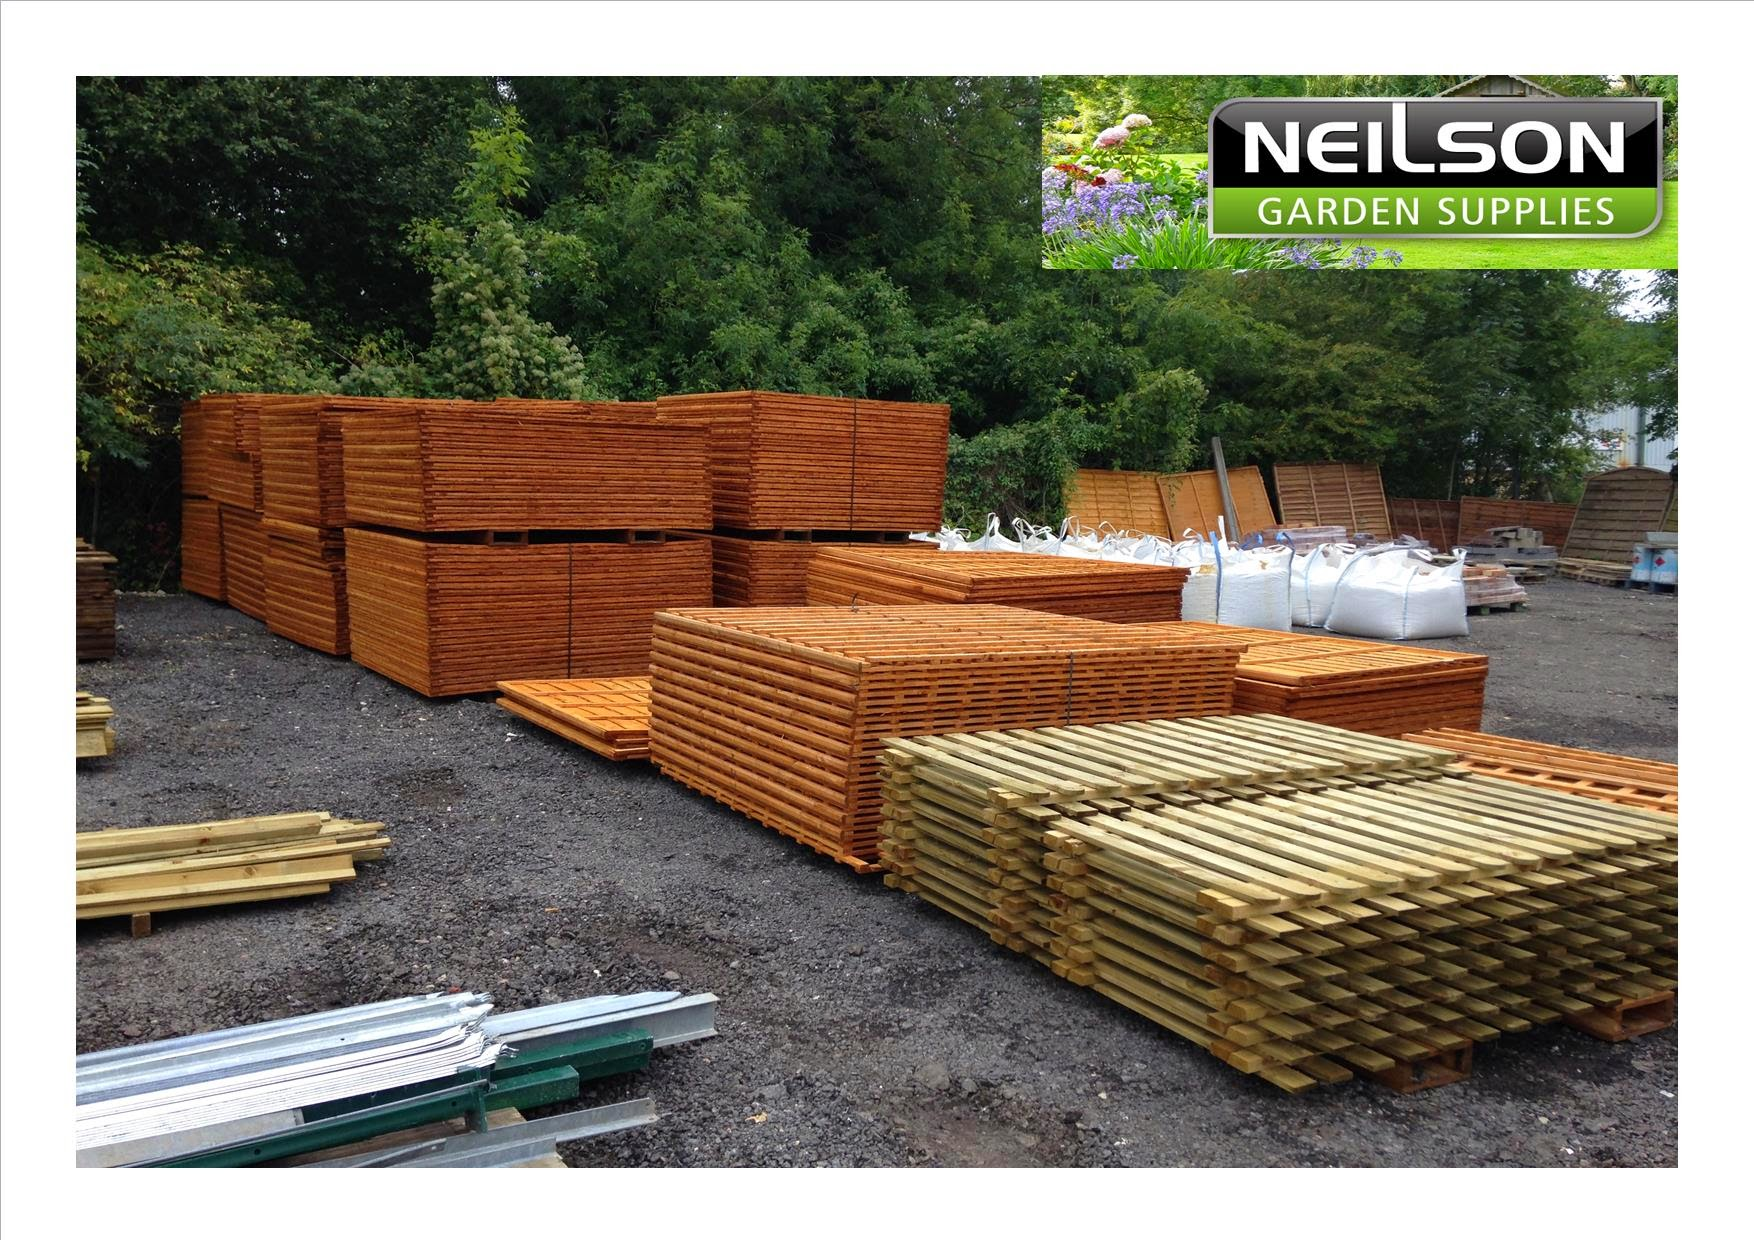 Neilson garden supplies google baanklon Choice Image